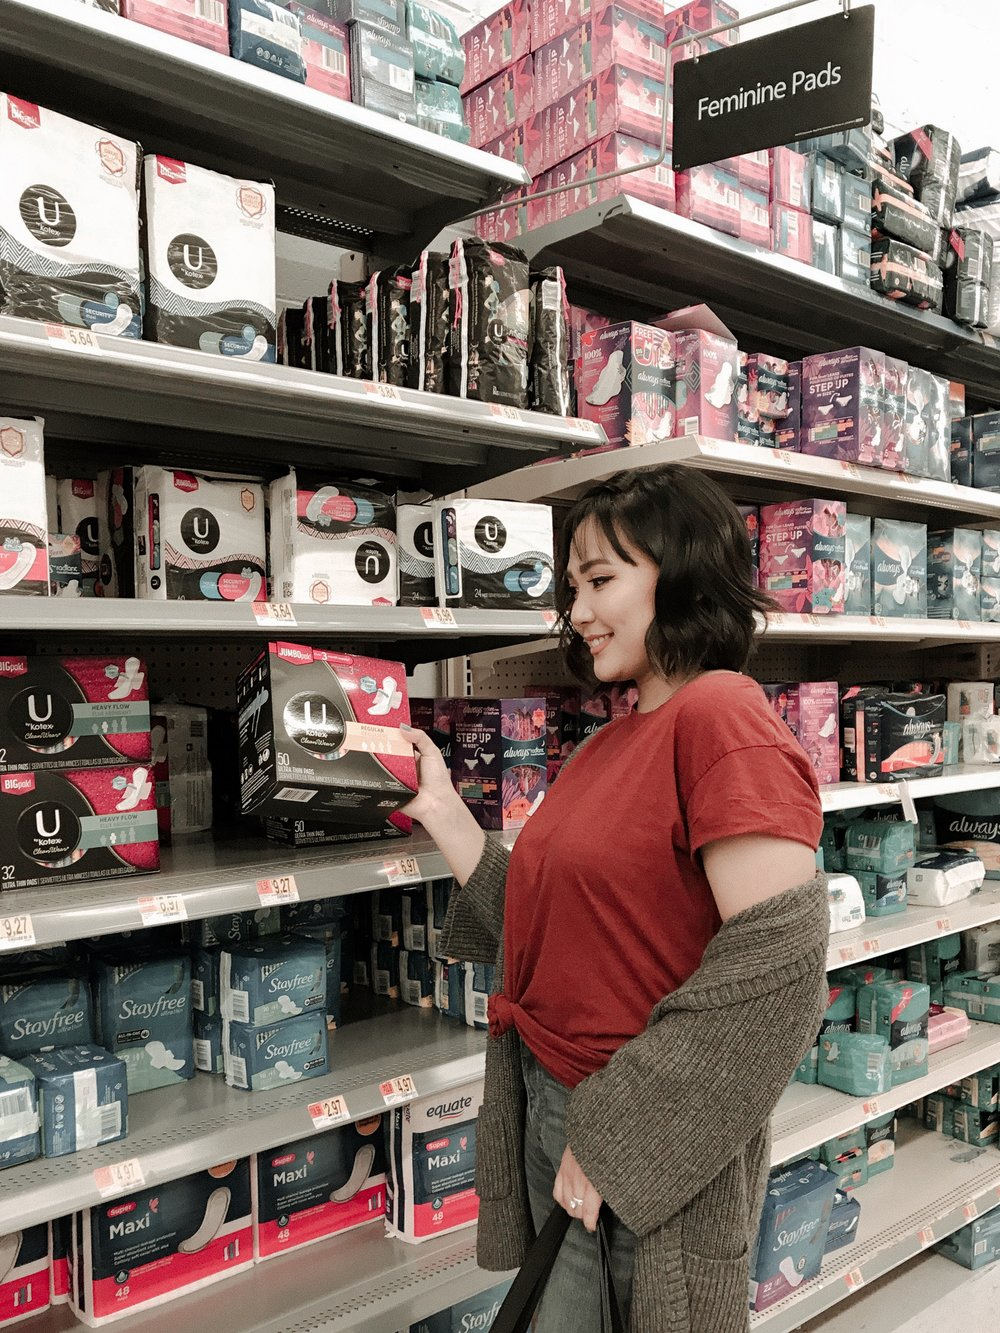 This is How You Can Help End Period Poverty with U by Kotex® and Walmart